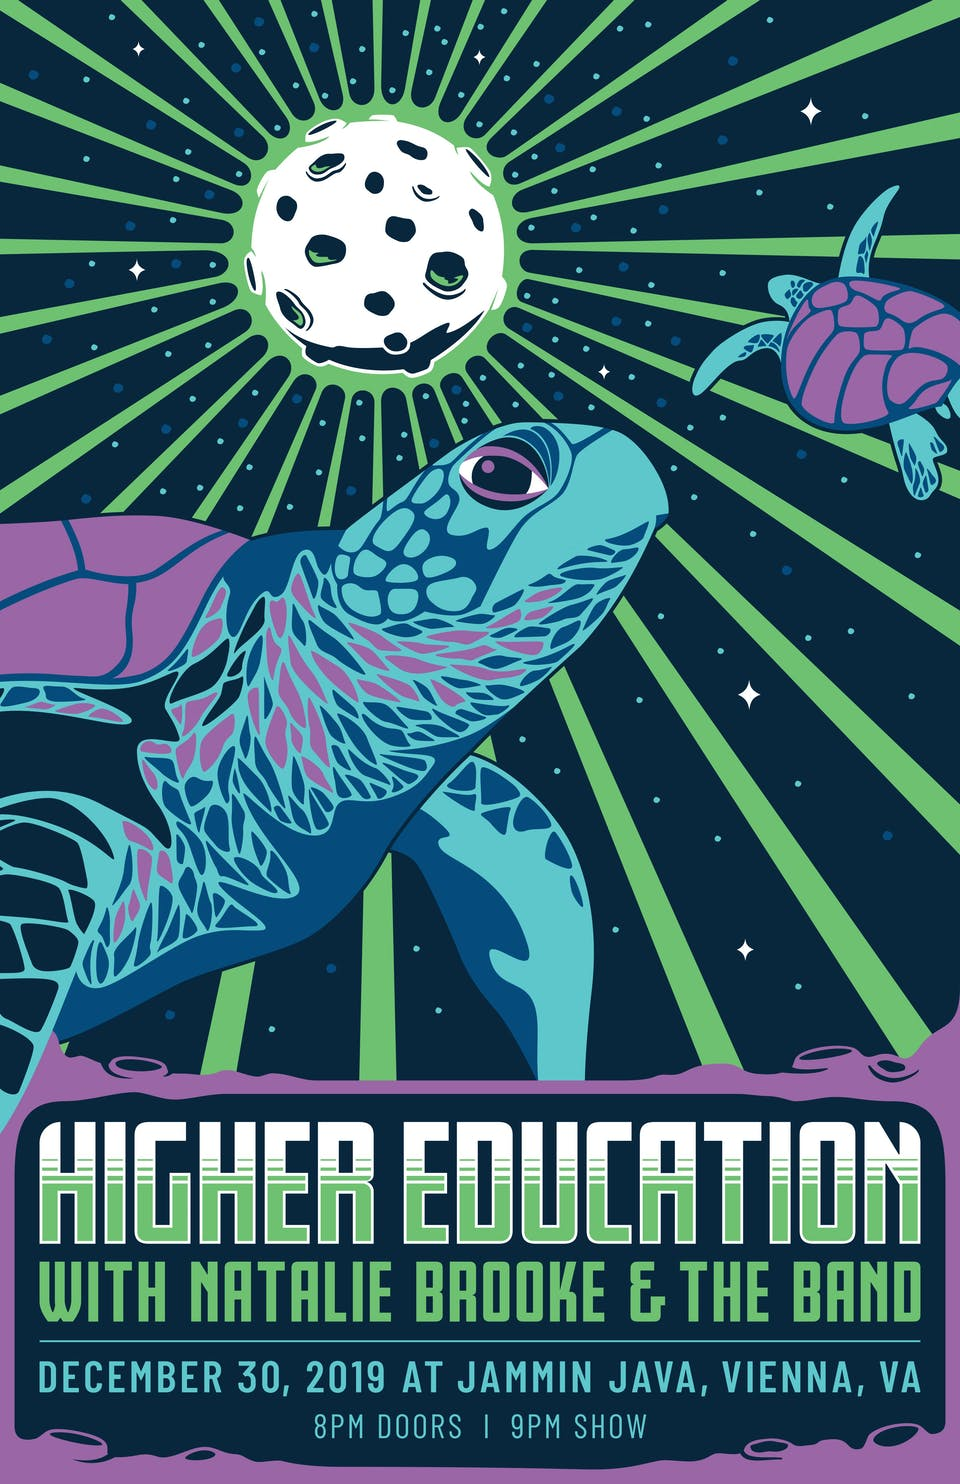 Higher Education Pre - NYE Party + Natalie Brooke & The Band